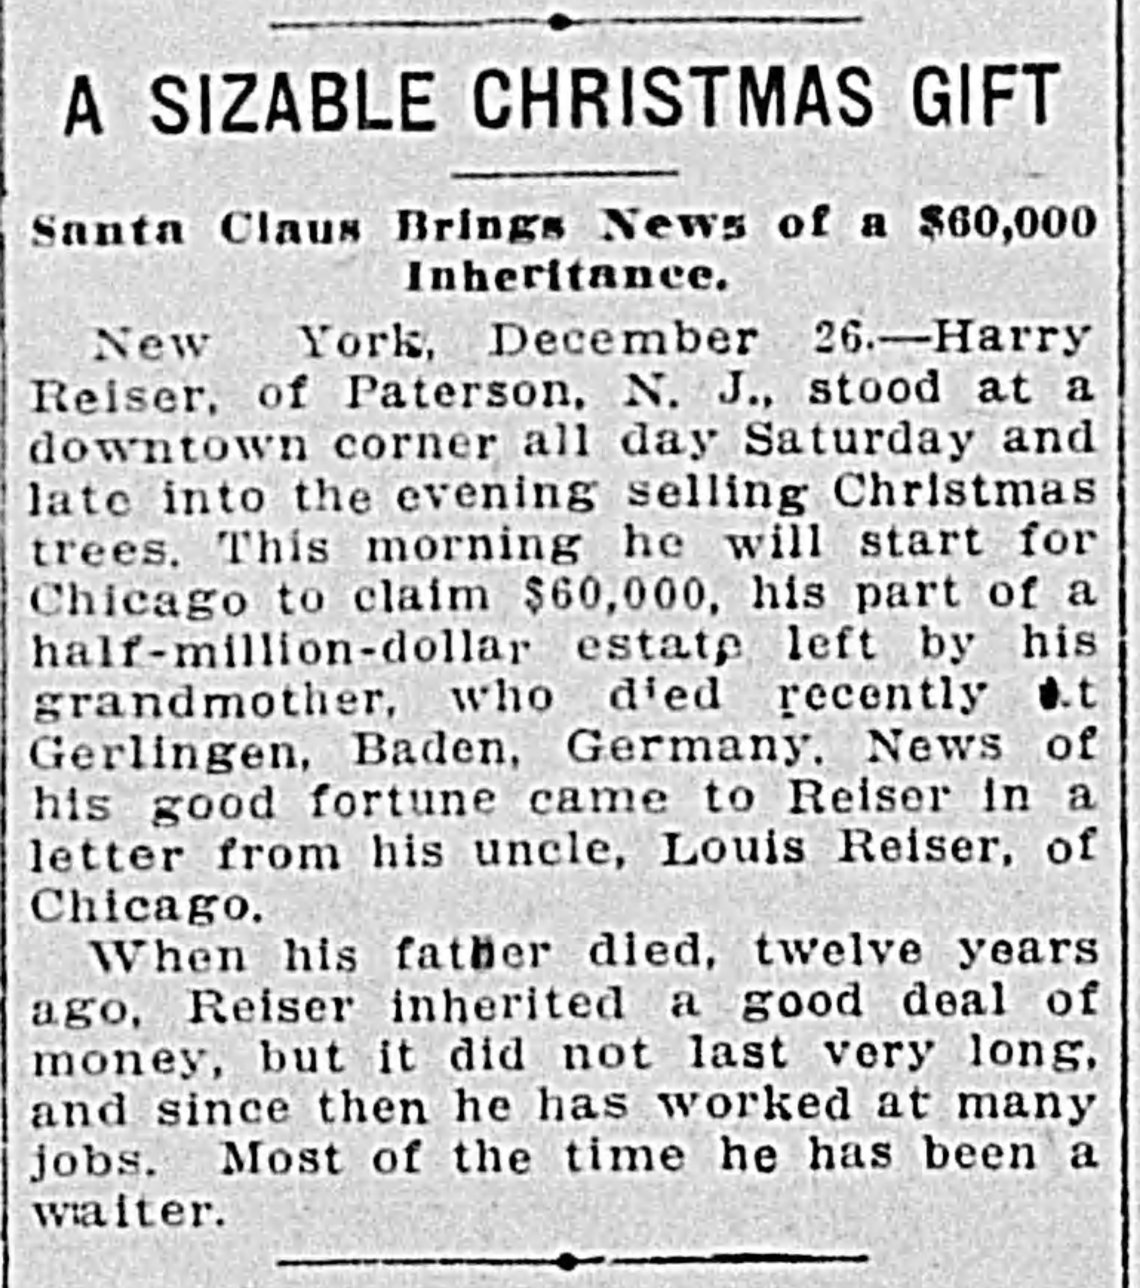 the_times_dispatch_tue__dec_27__1910_